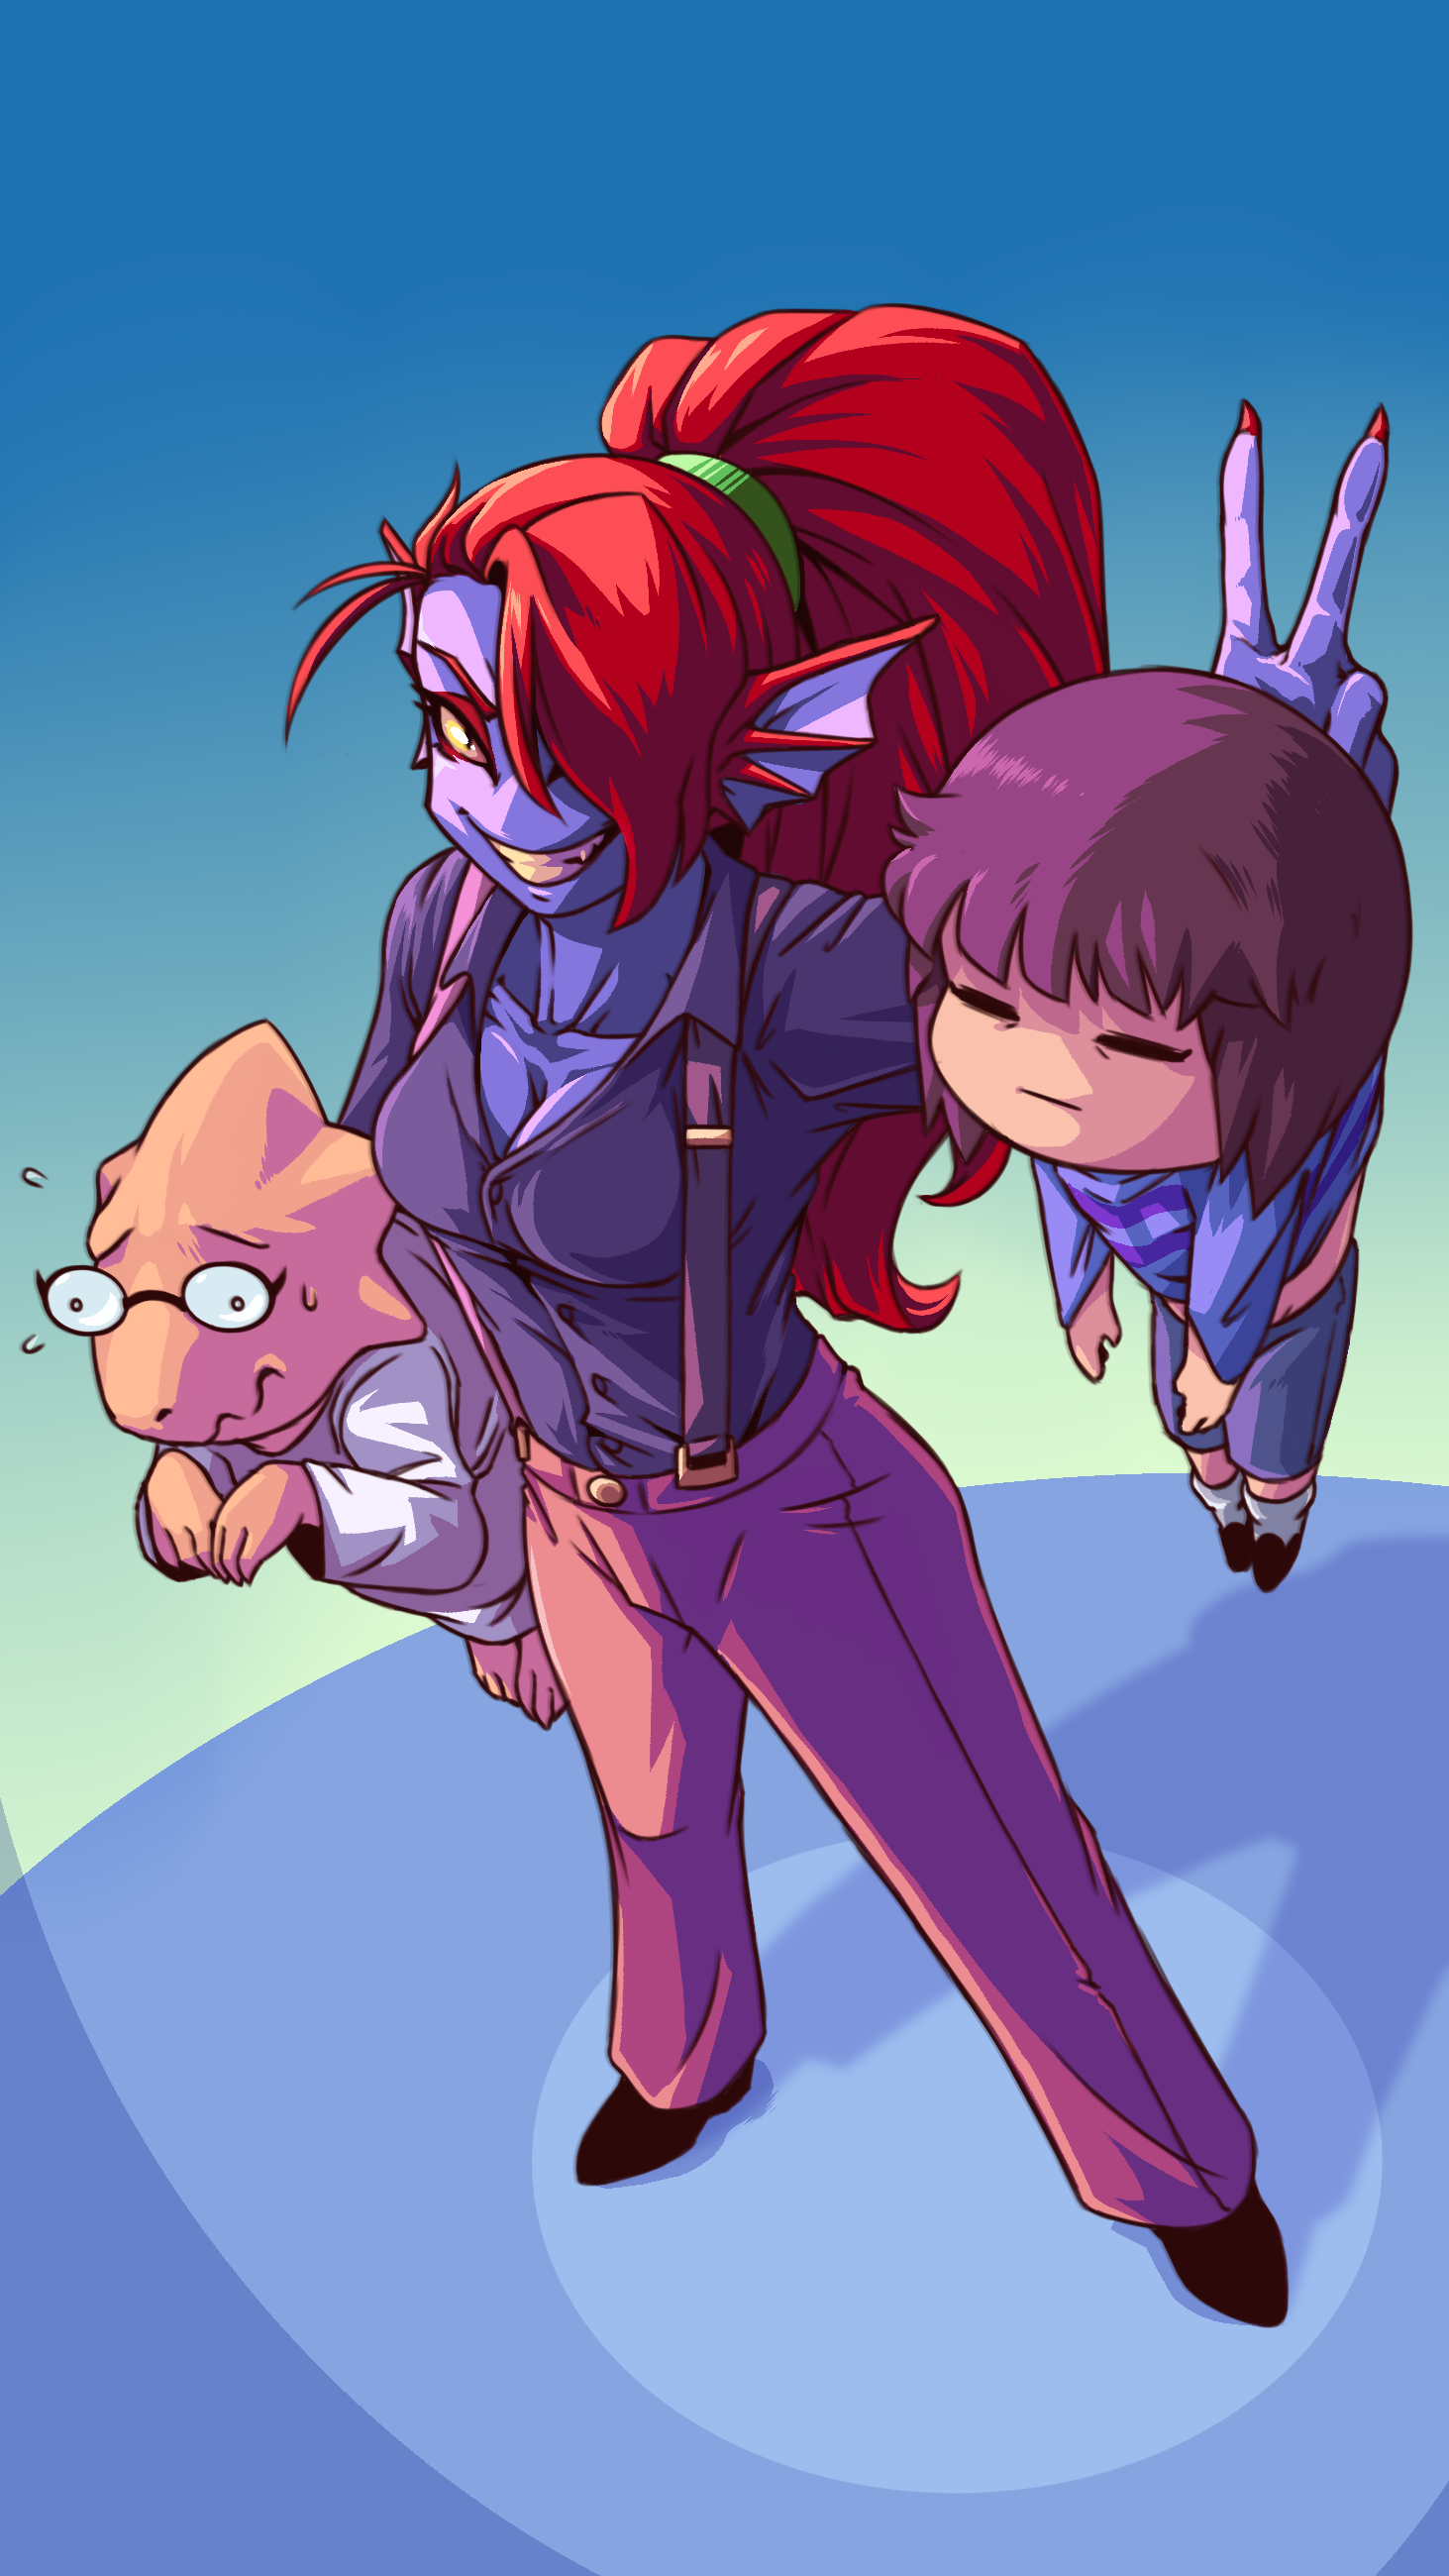 Undyne the Professional